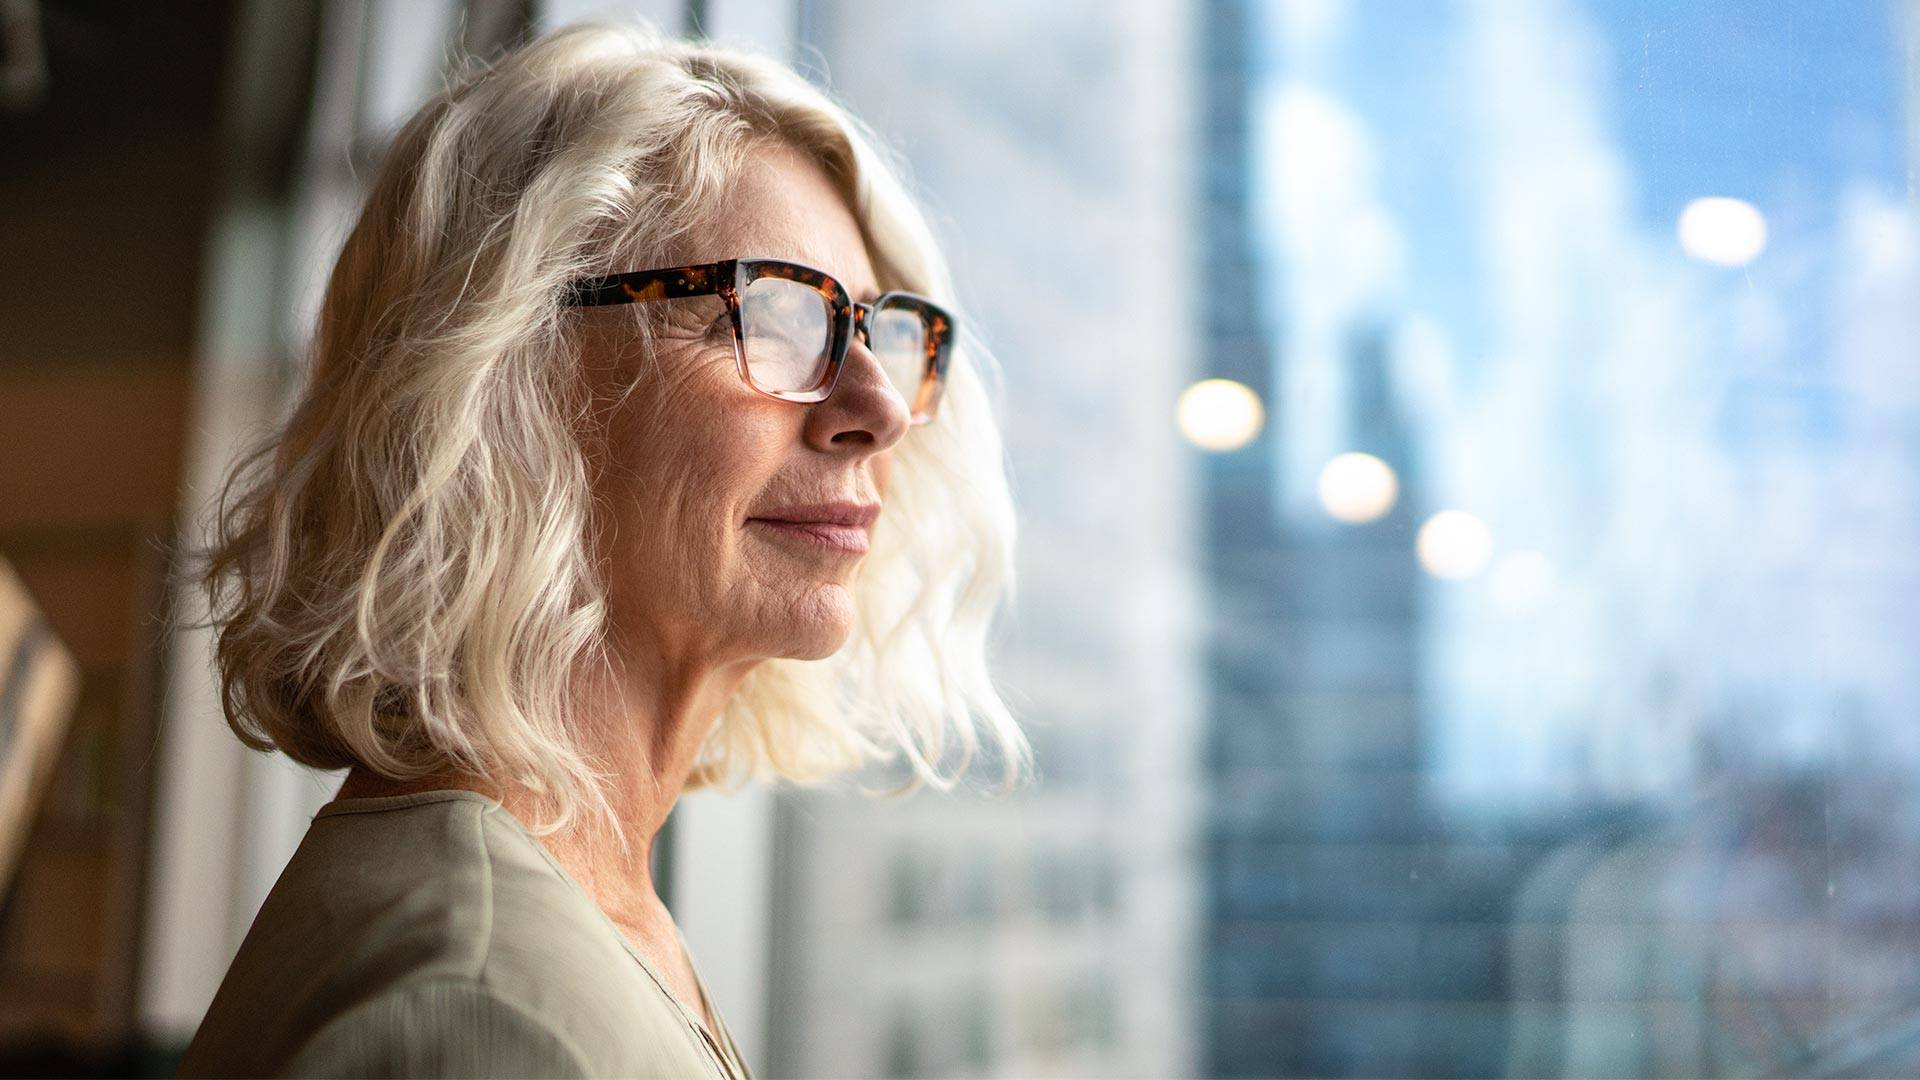 Breast Reconstruction Surgery: What to Expect